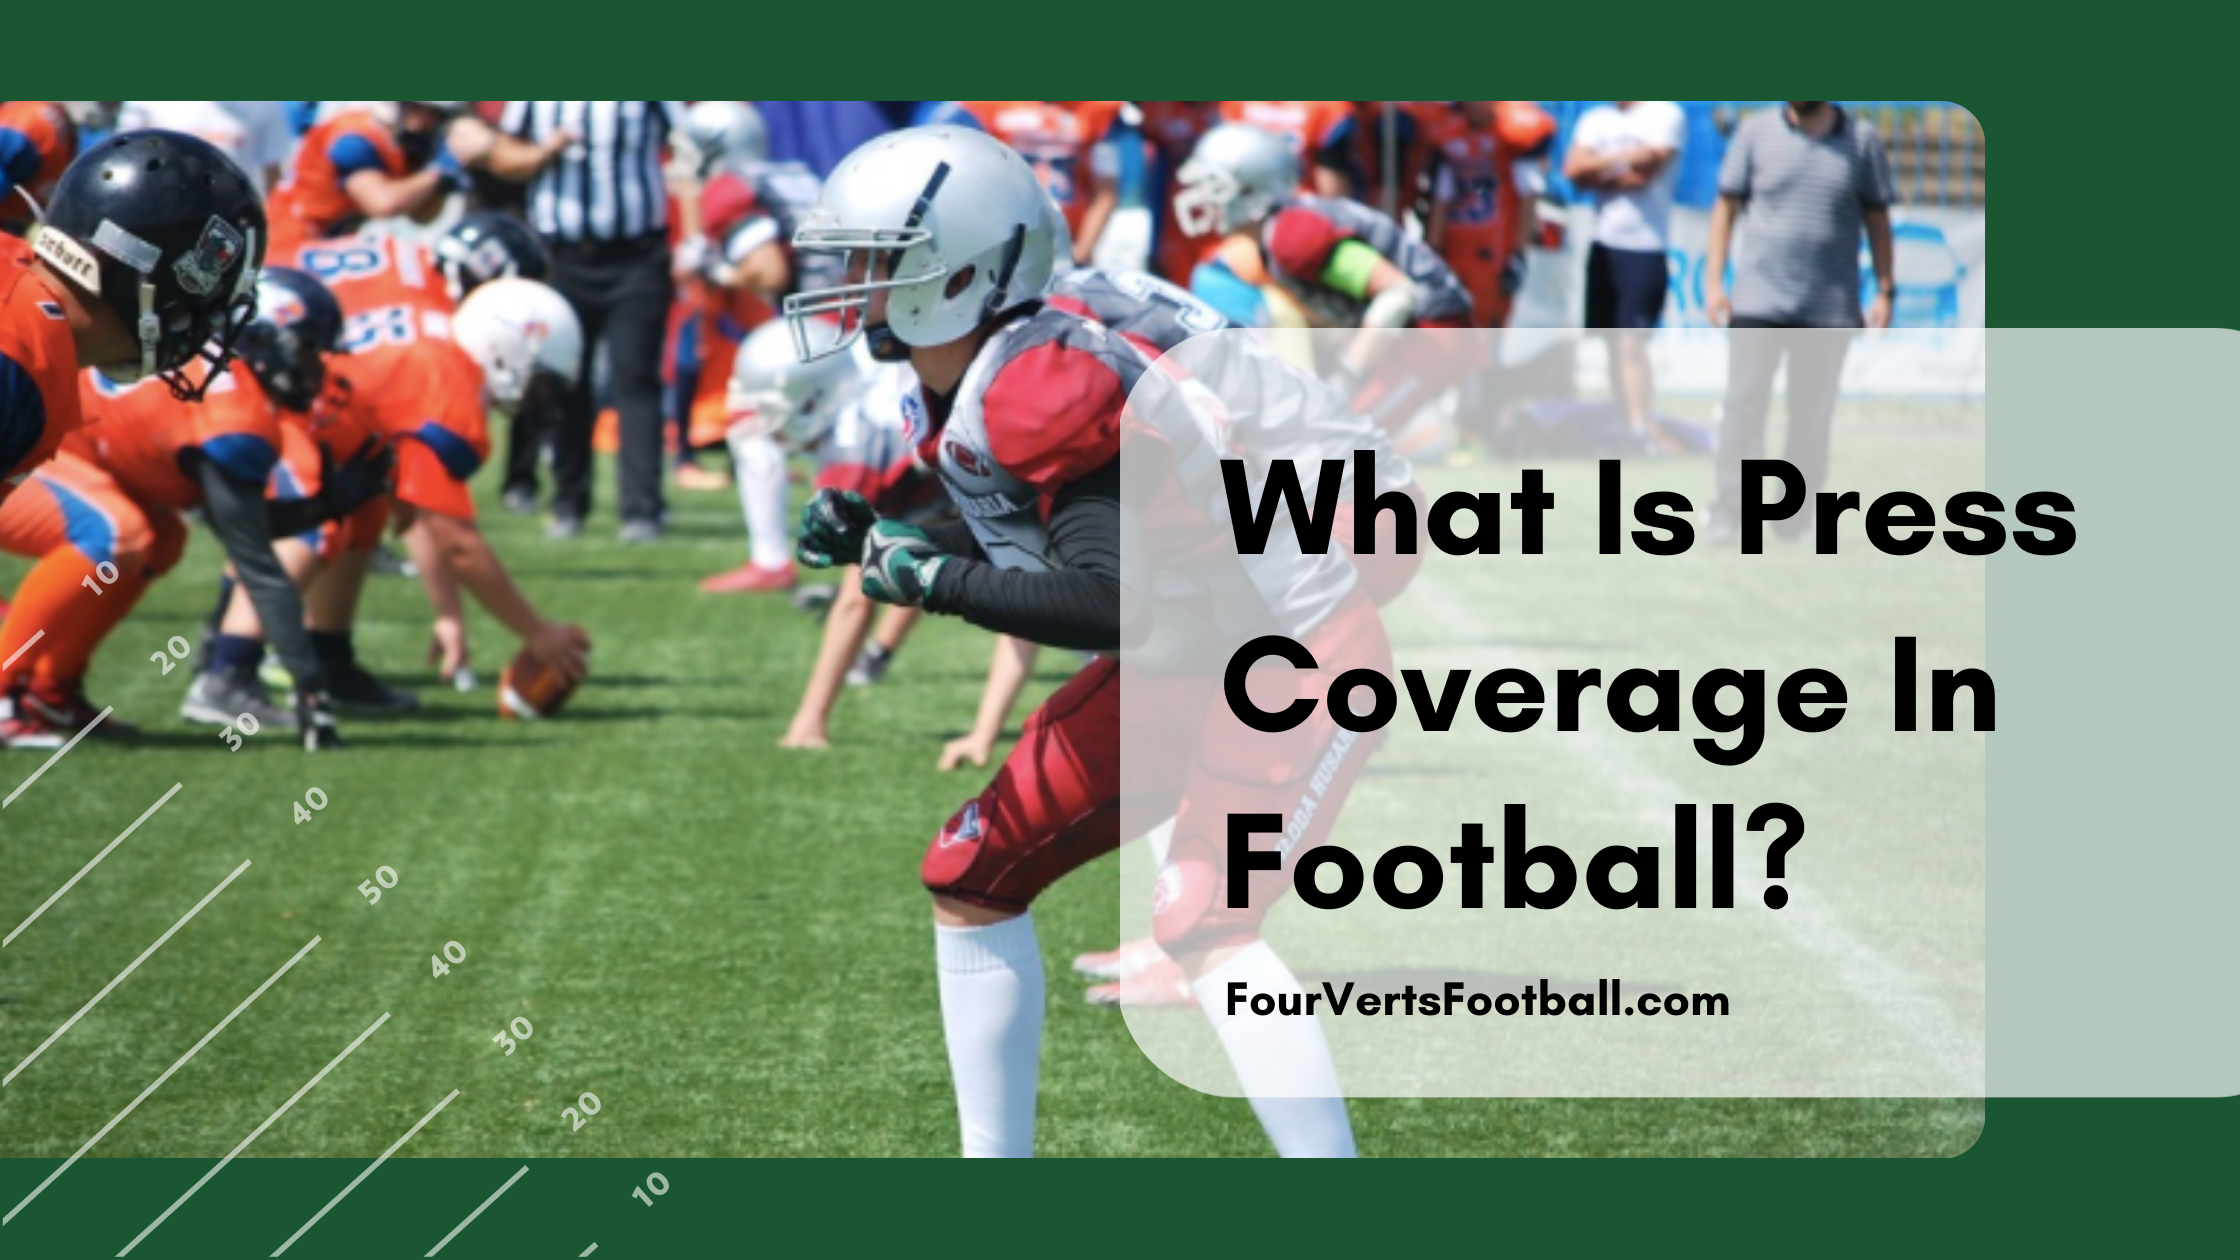 What is press coverage